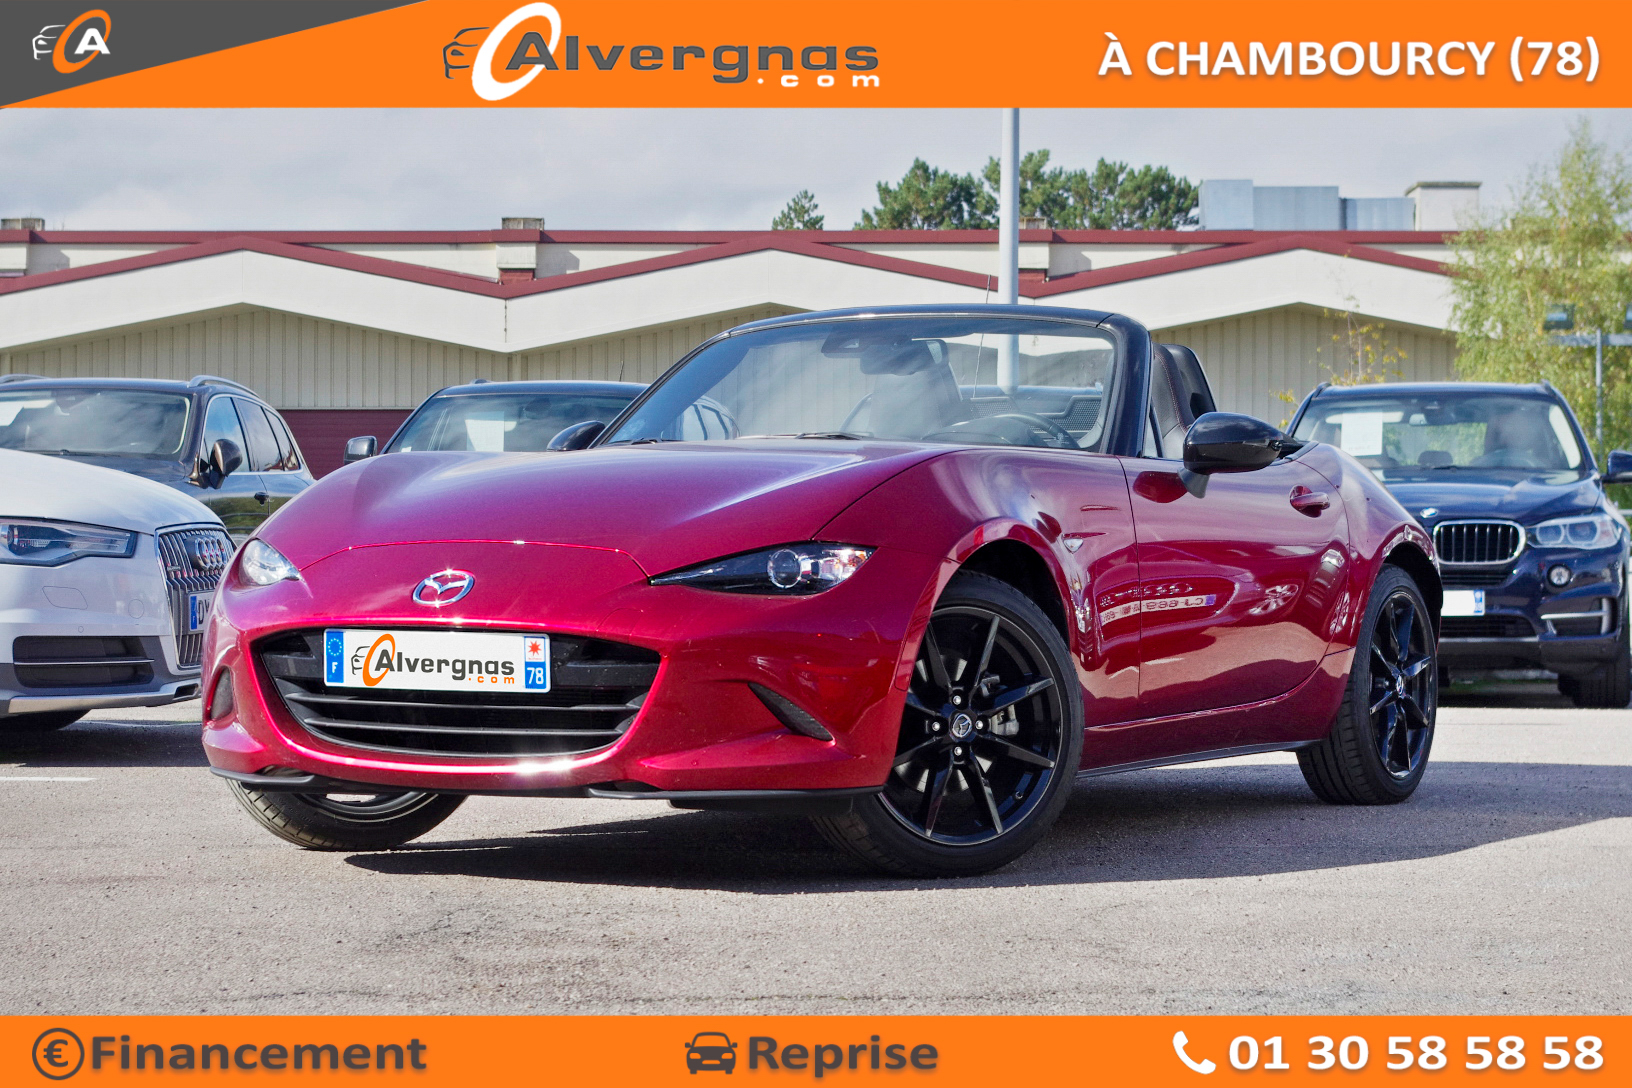 MAZDA MX-5 ST d'occasion sur Paris